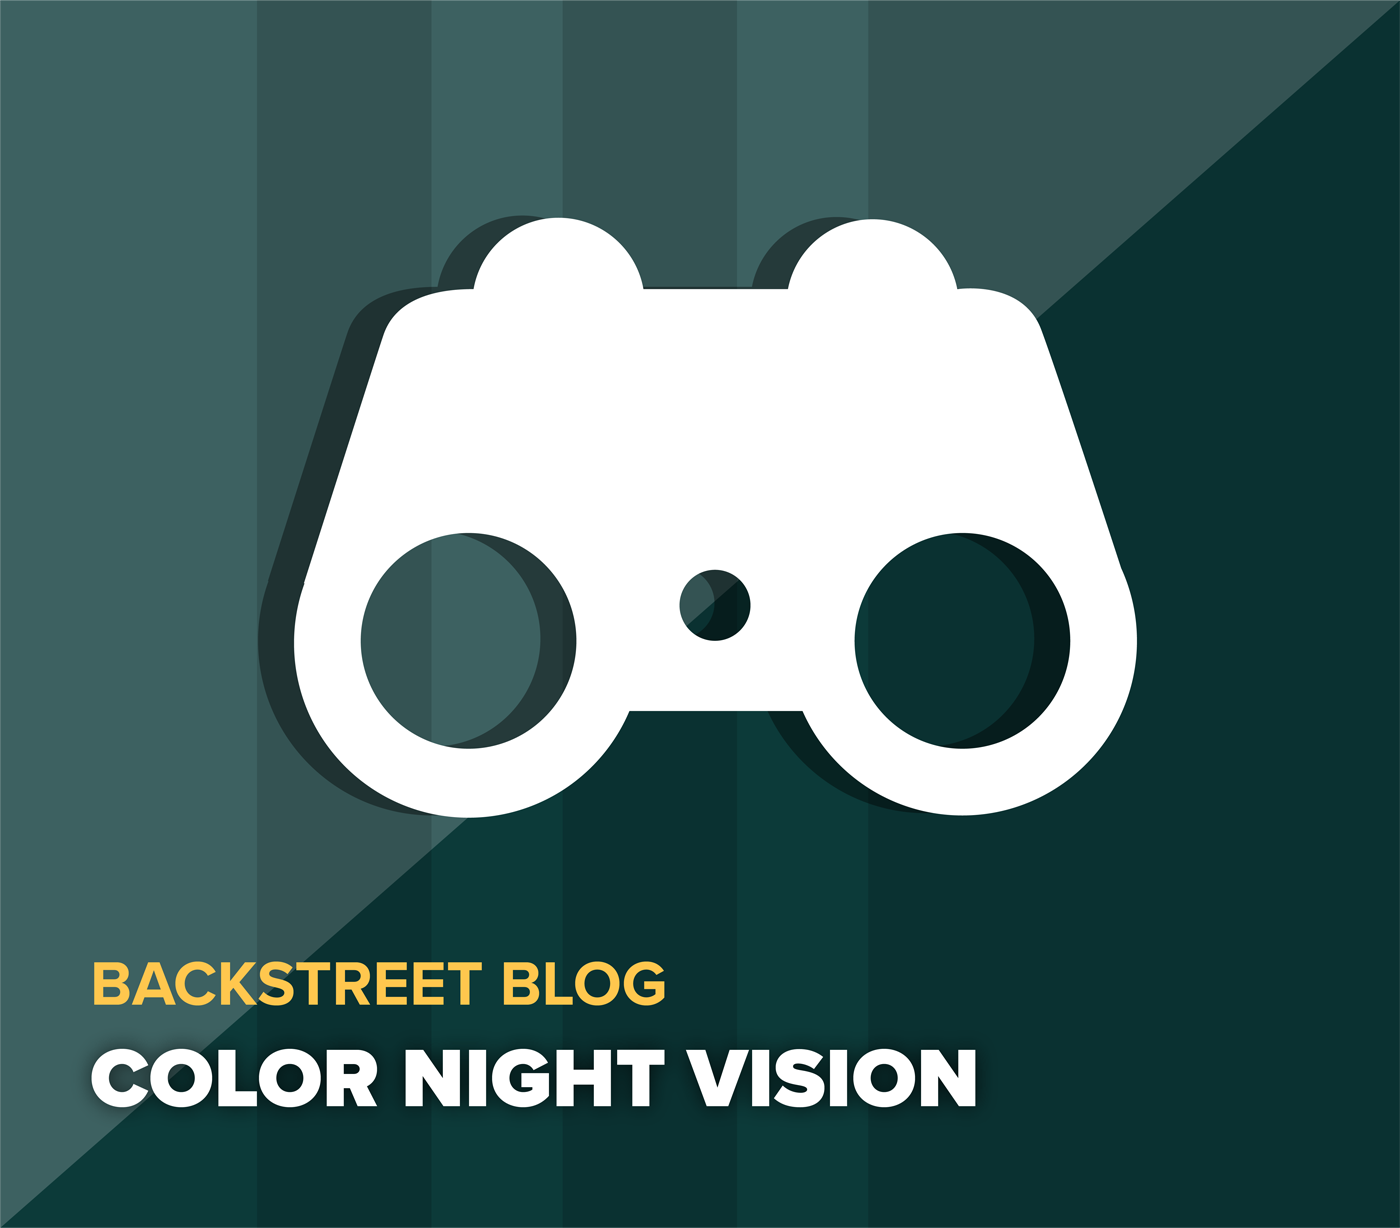 What is Color Night Vision?